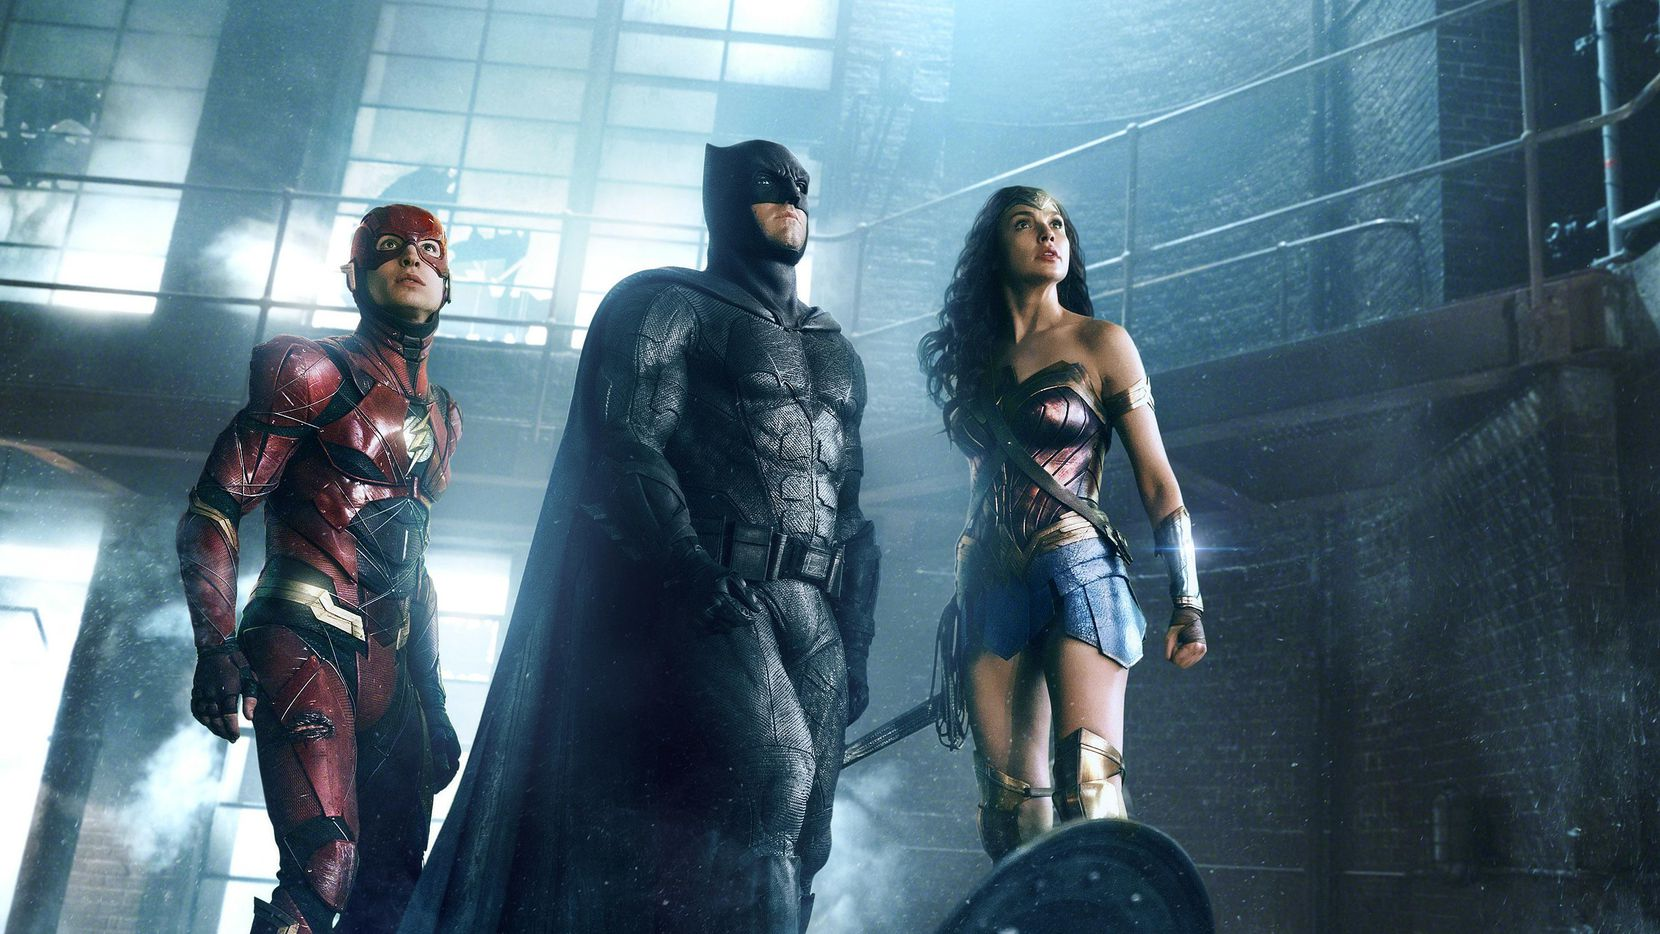 Justice League: Gal Gadot and Ben Affleck also ask for the 'Snyder Cut'